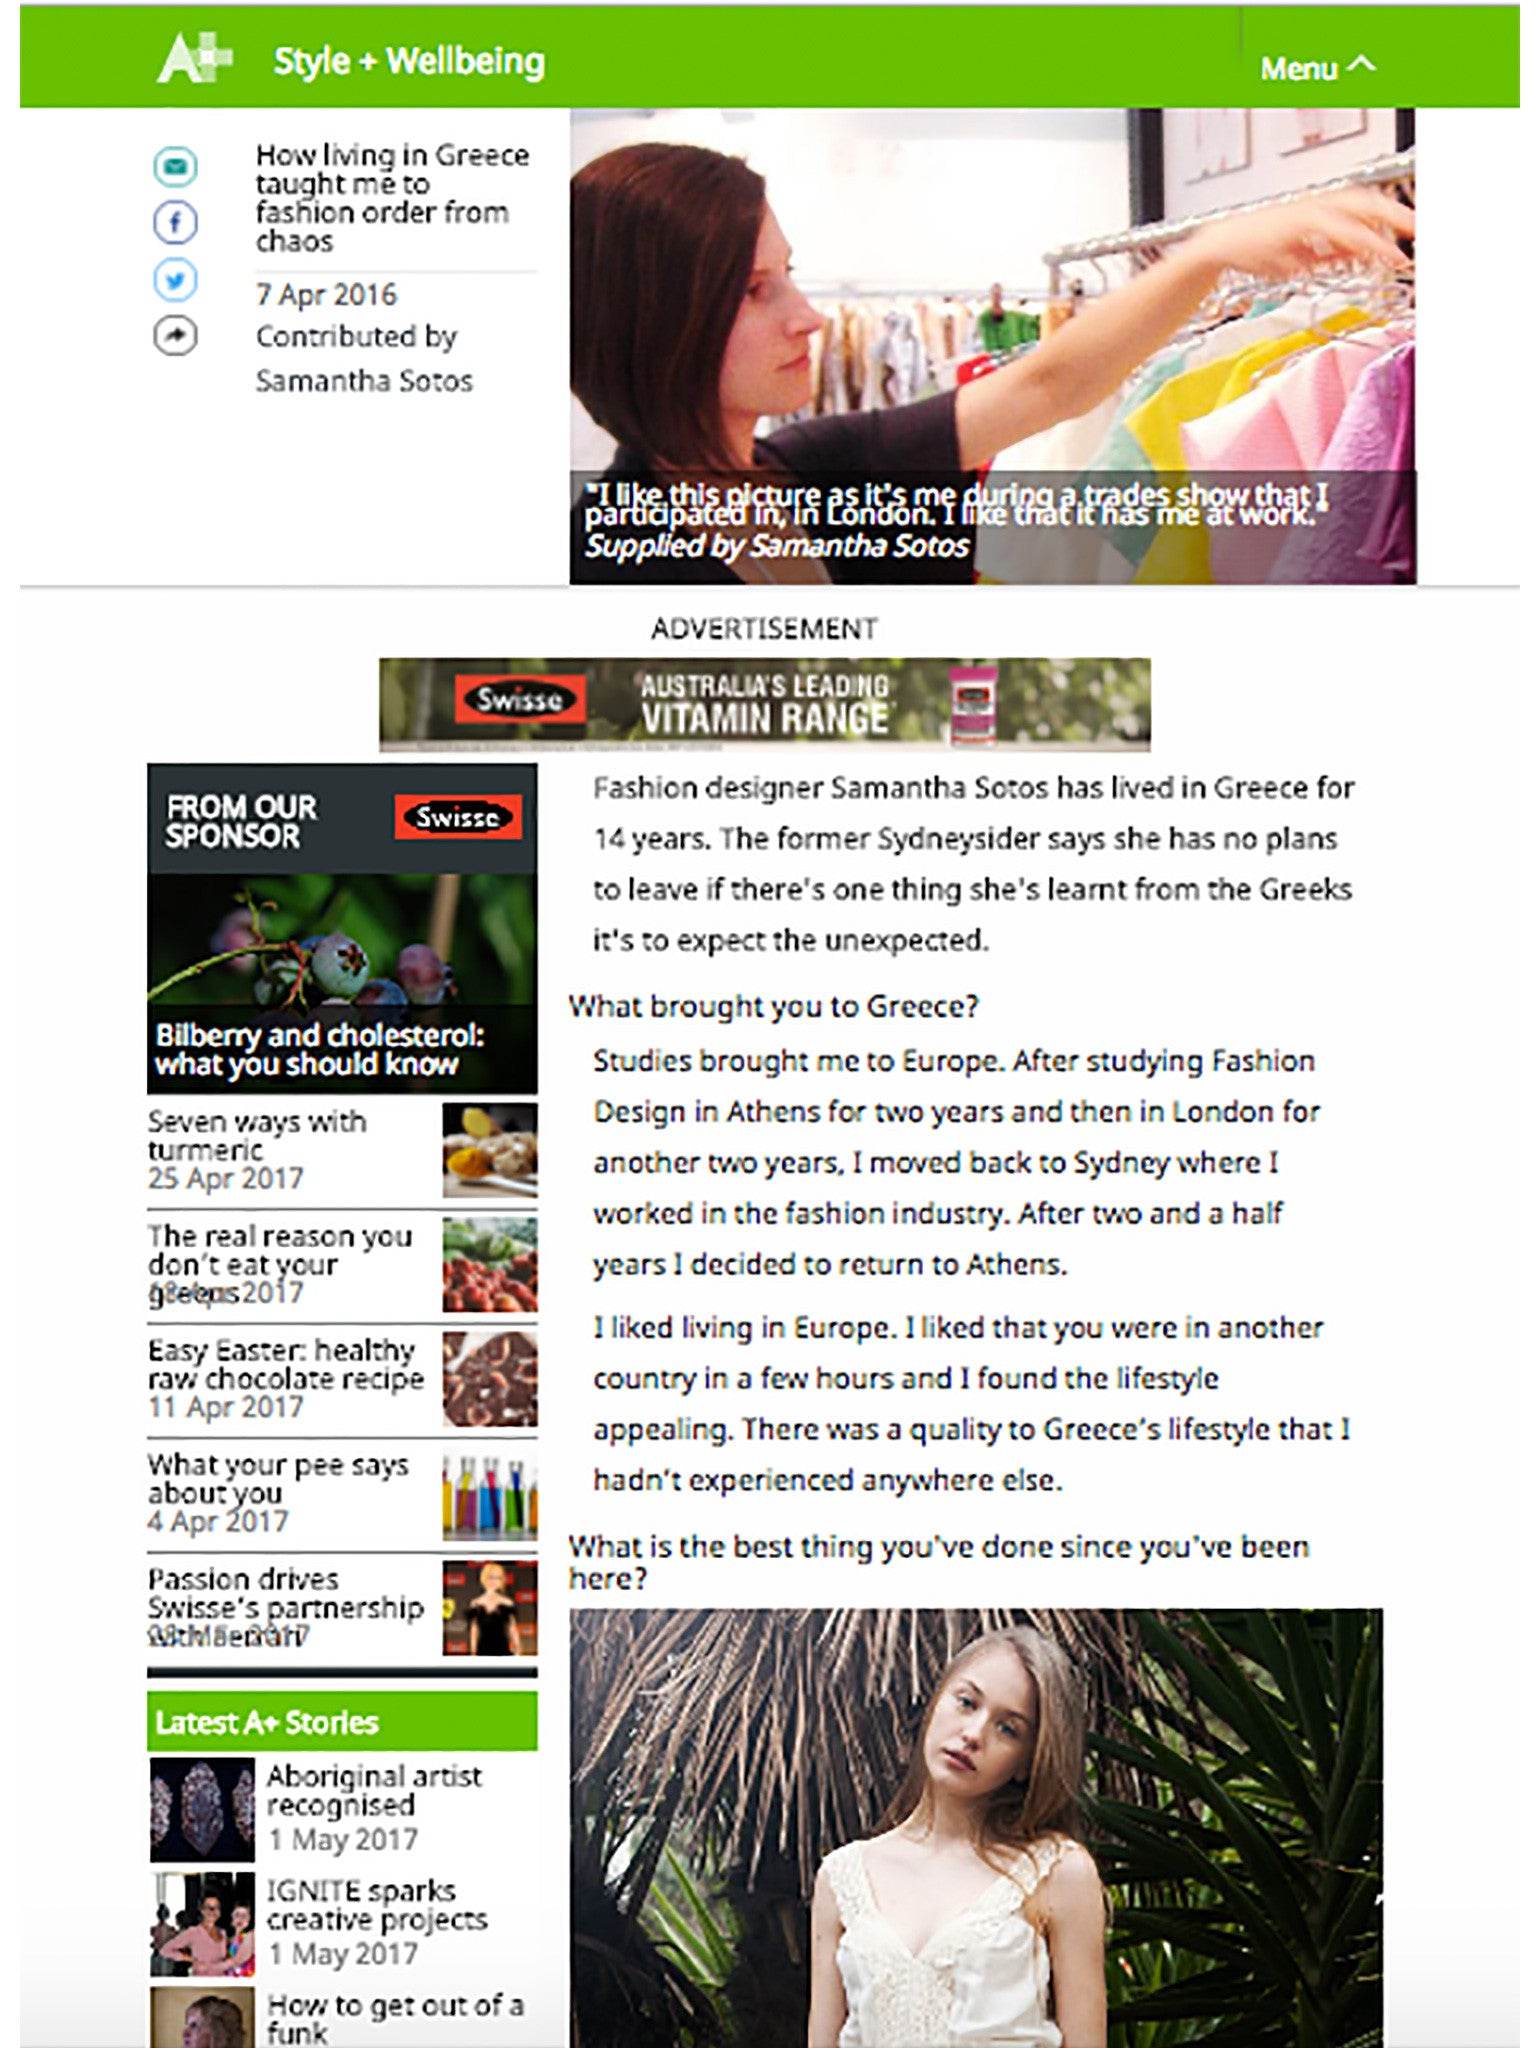 07/15 - Australia Plus - Australia - http://www.australiaplus.com/international/style-and-wellbeing/how-living-in-greece-taught-me-to-fashion-order-from-chaos/7307970